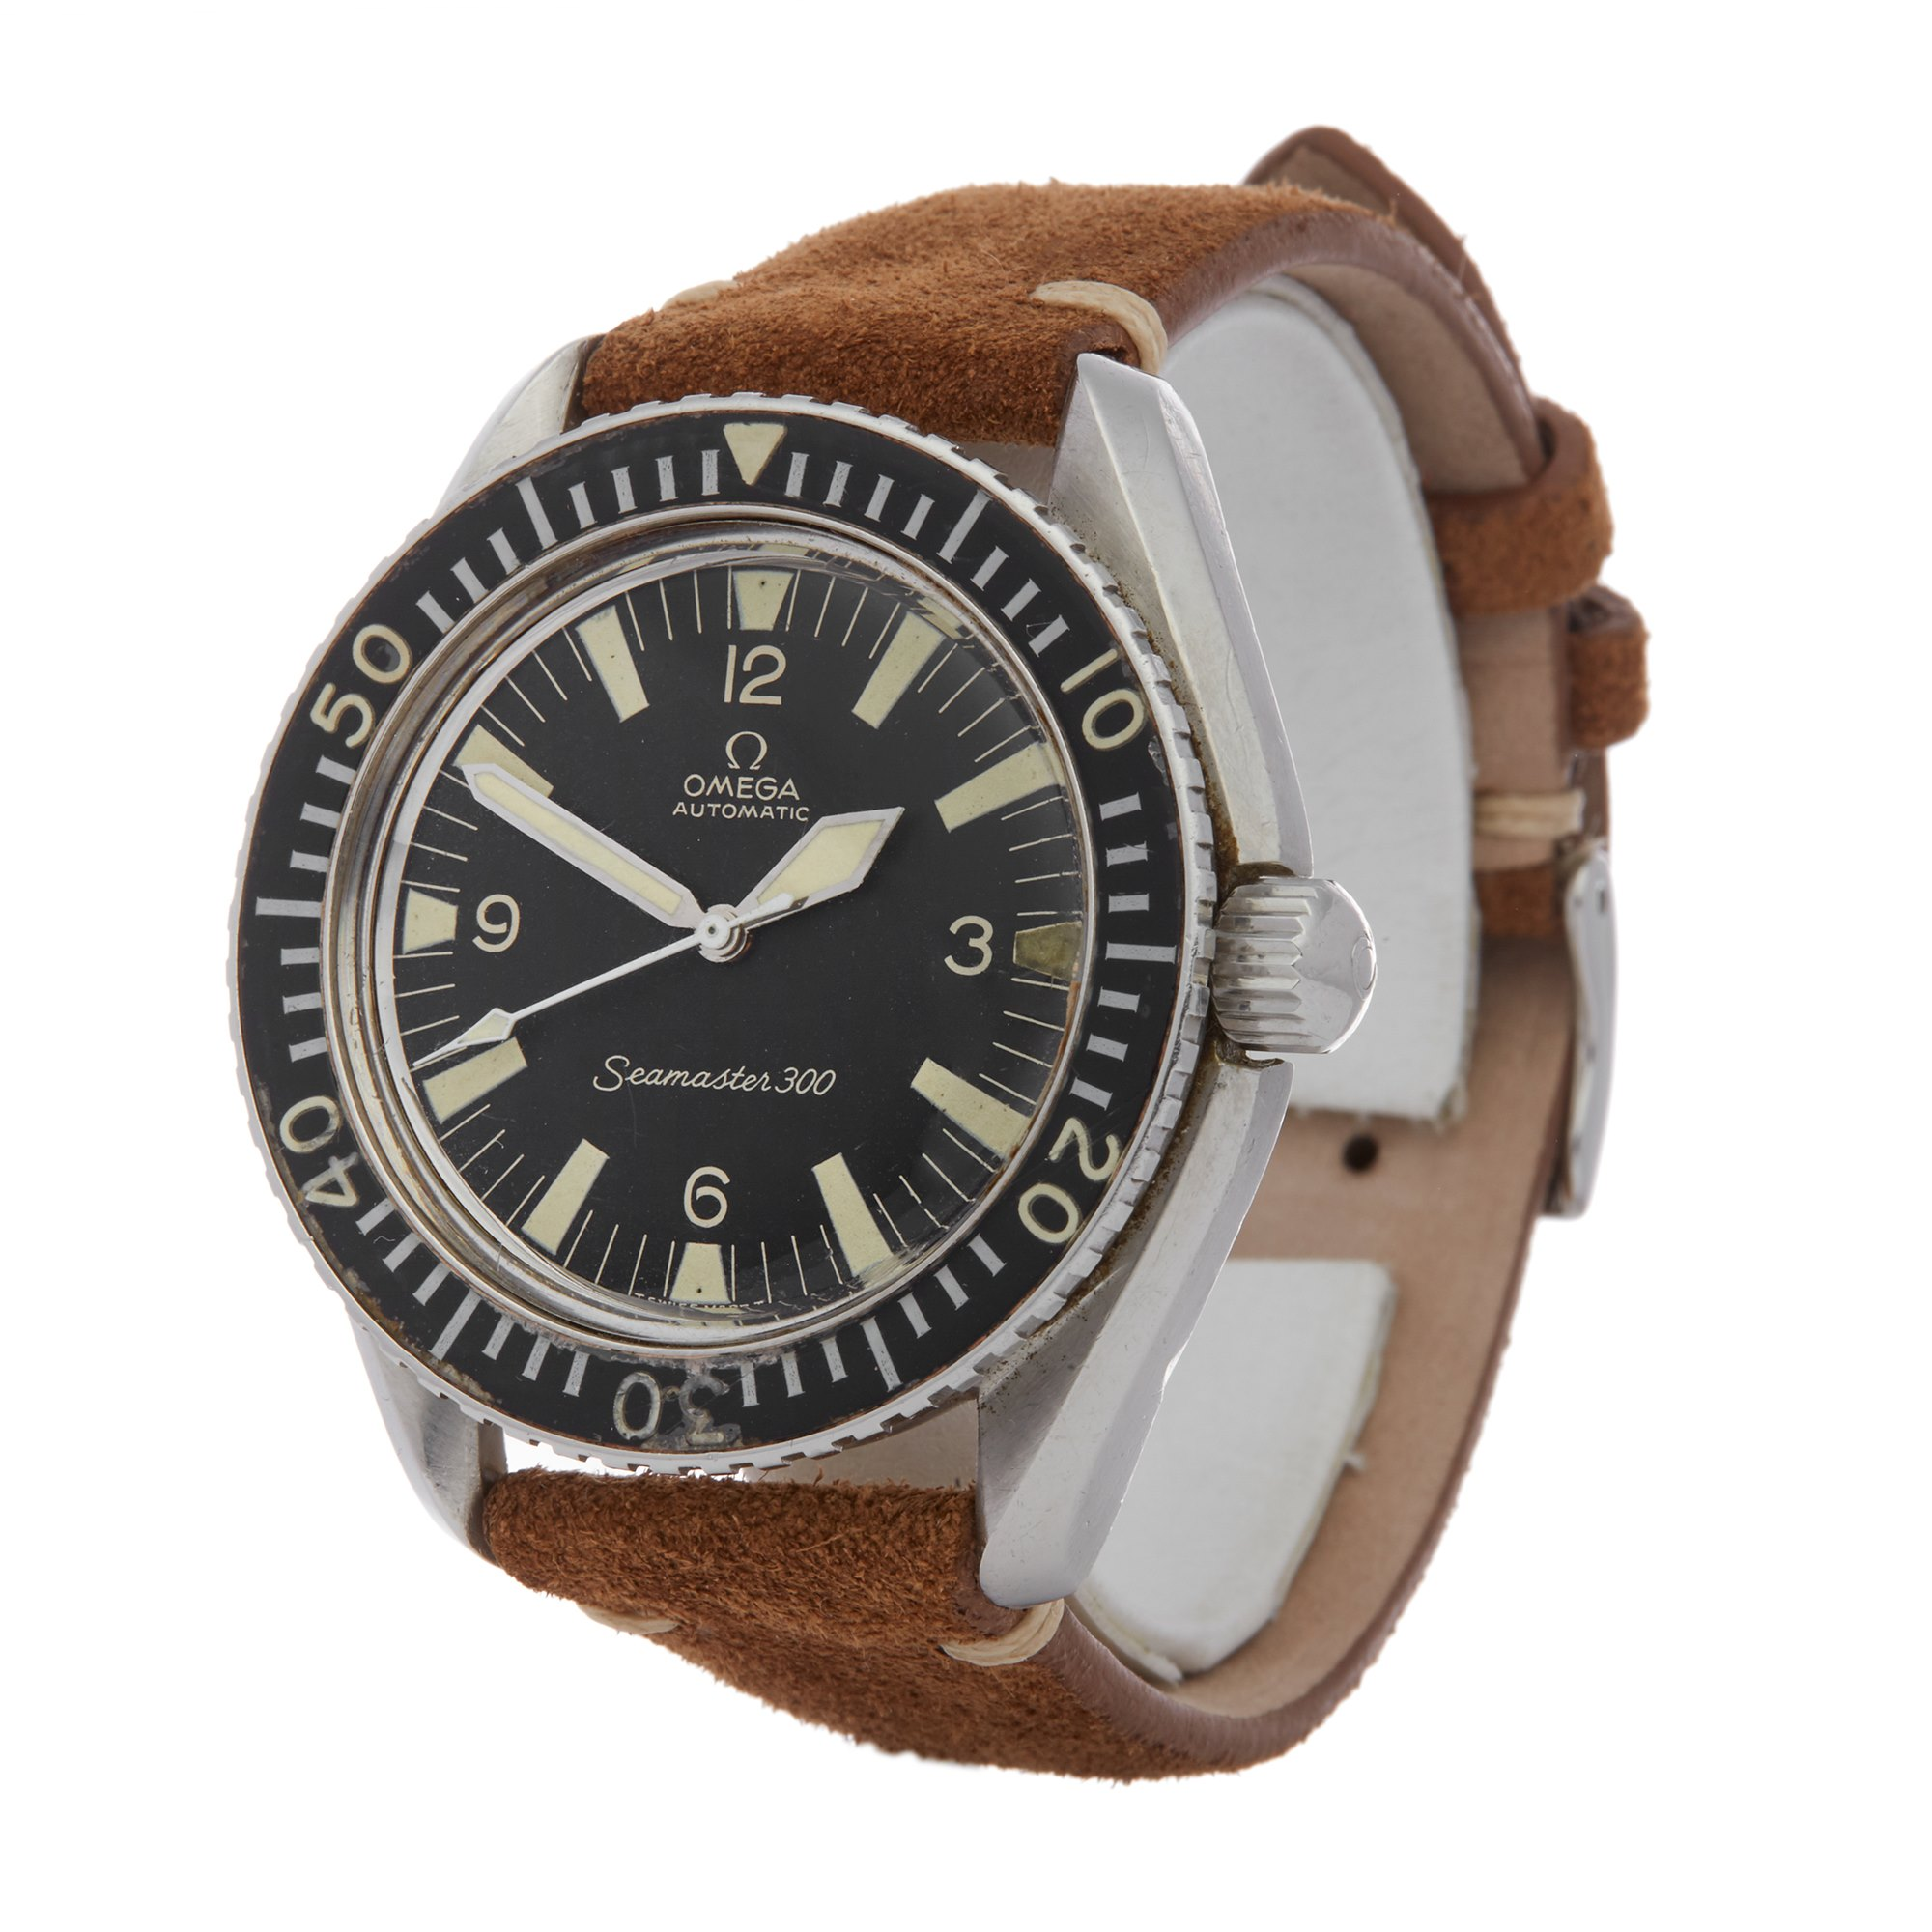 Omega Seamaster 300 Arrow Hands Stainless Steel 165.024